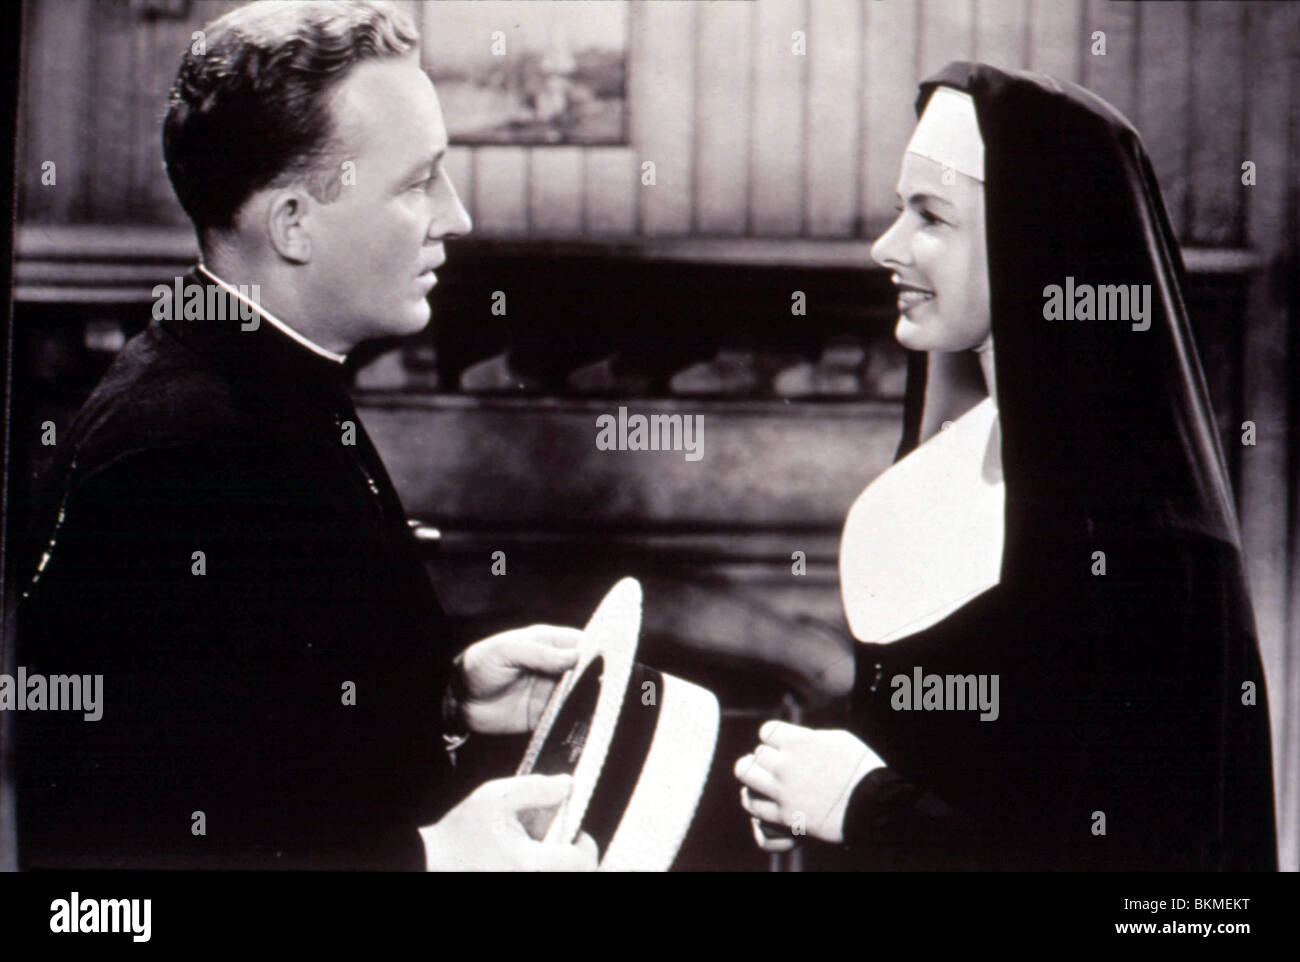 THE BELL'S OF ST MARY'S (1945) BING CROSBY, INGRID BERGMAN BSMY 001 - Stock Image